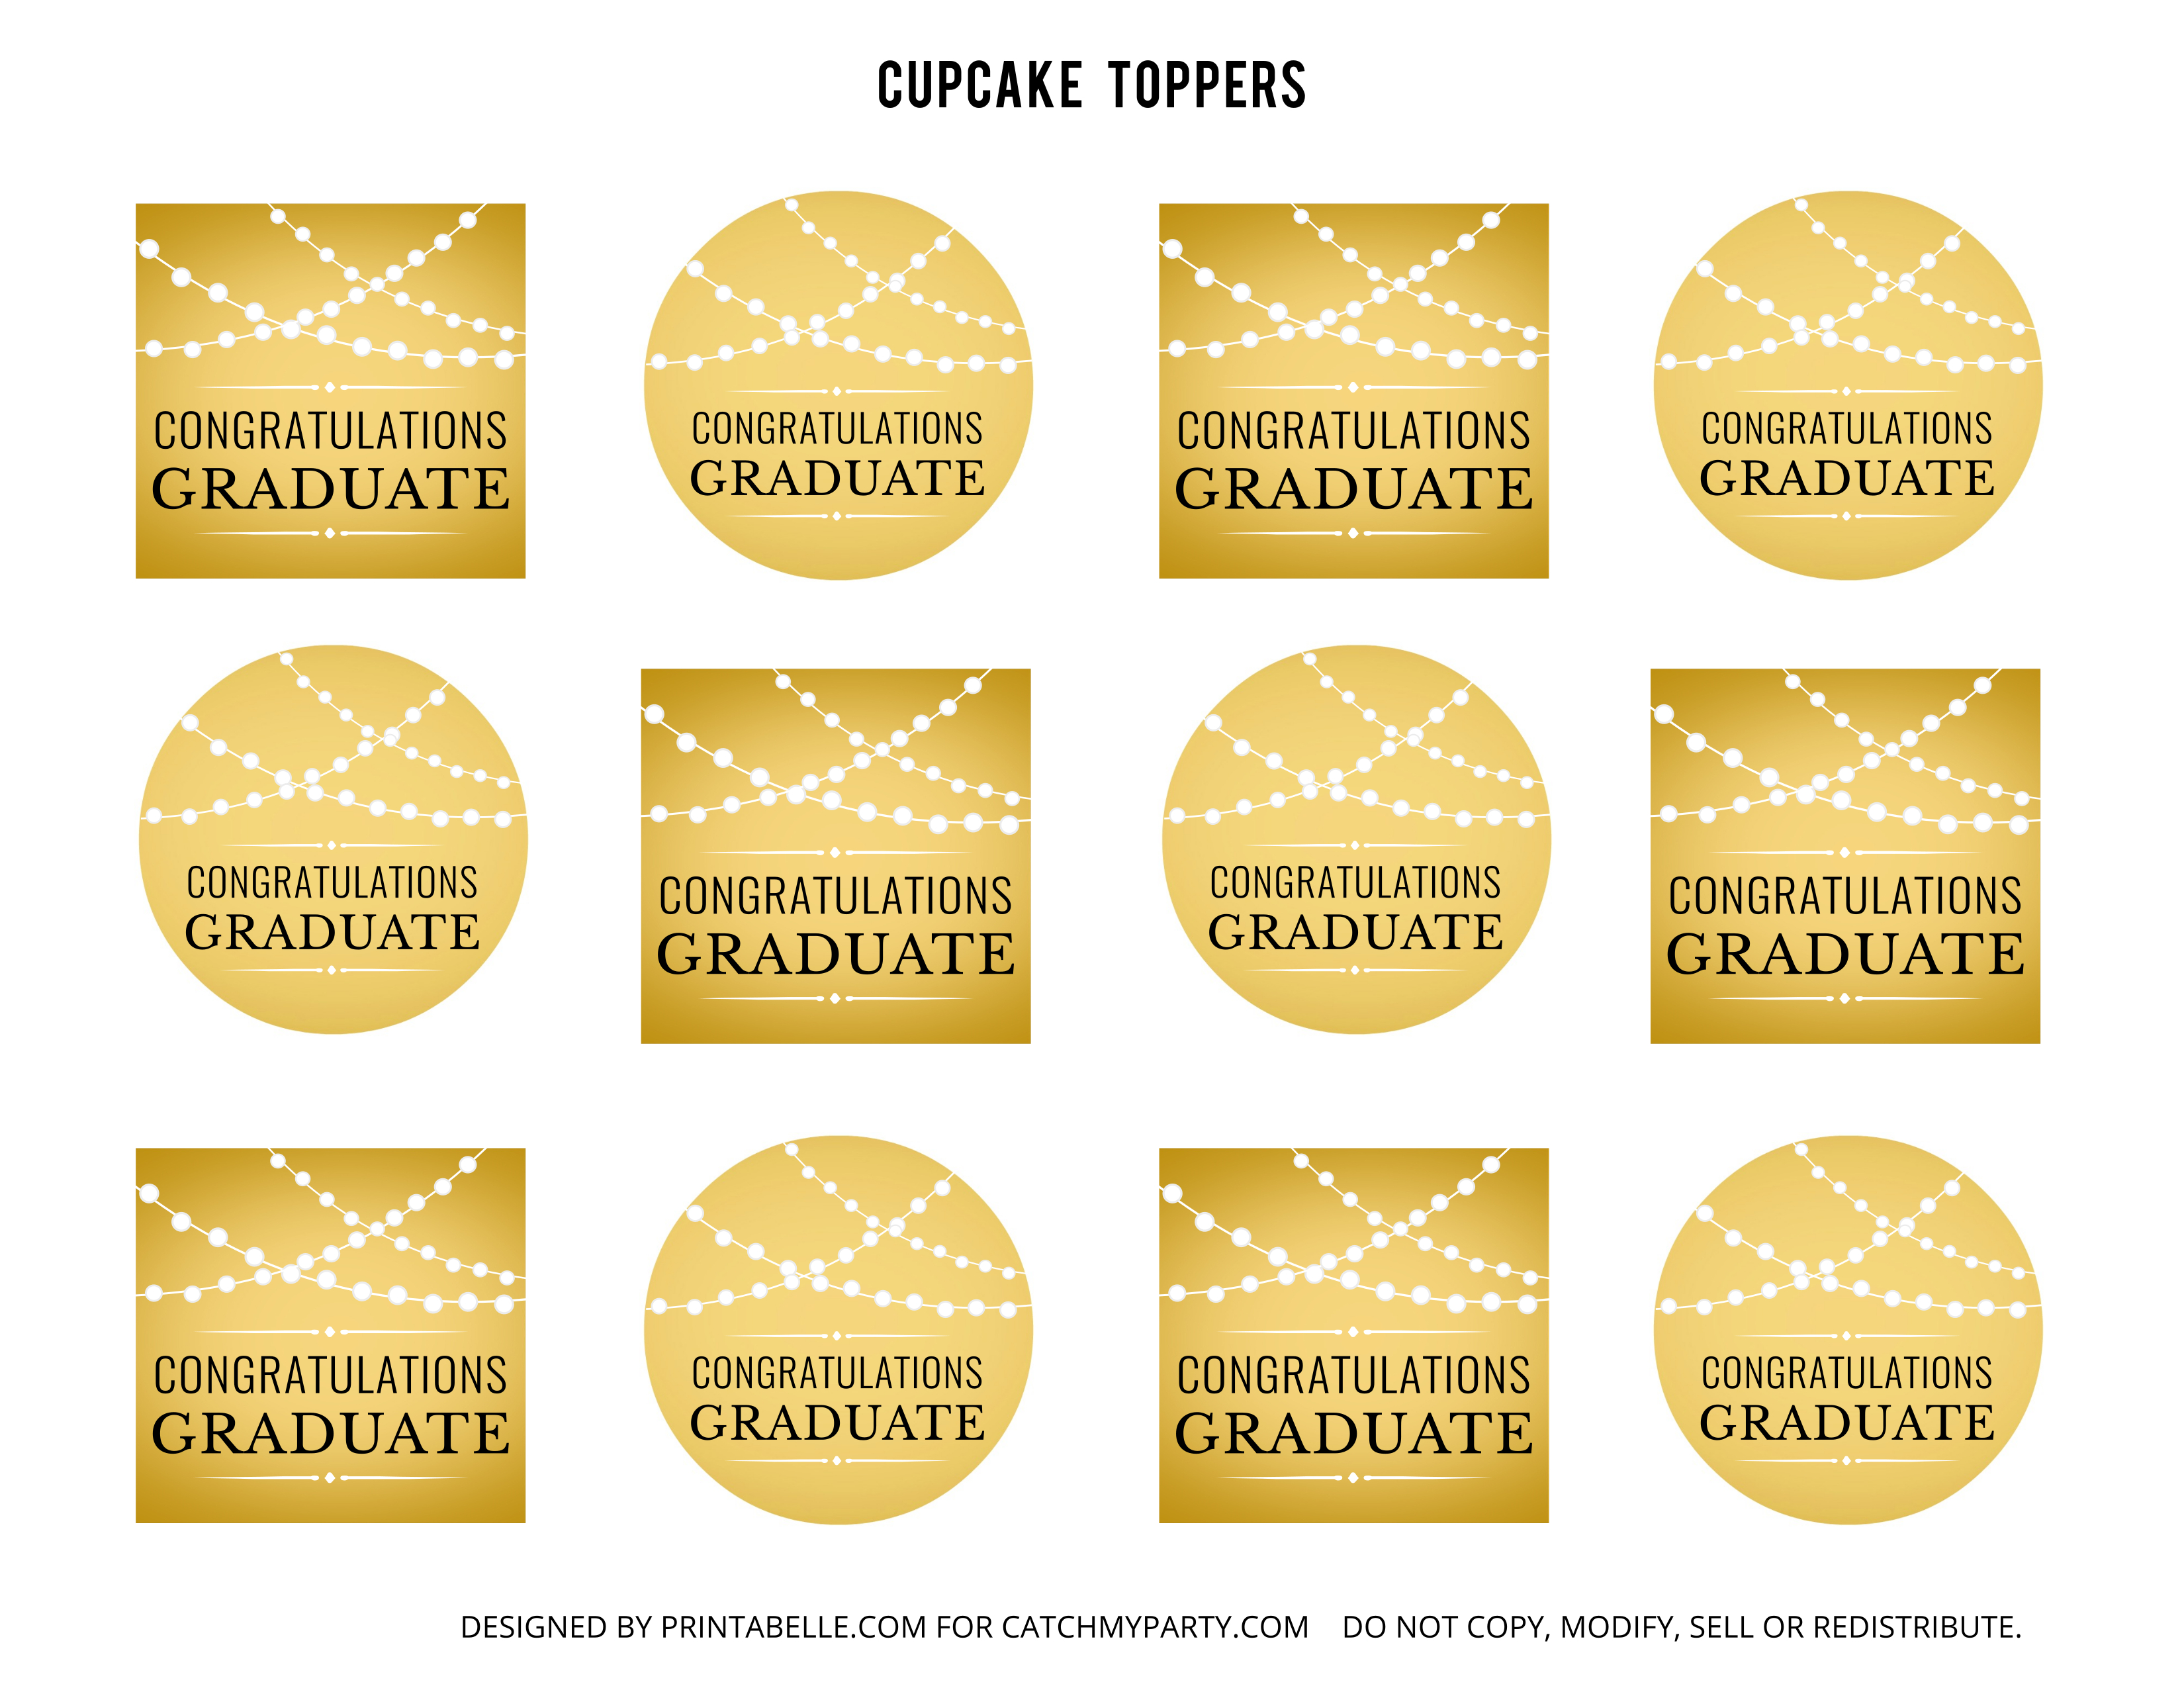 Free Gold Graduation Printables | Catch My Party - Free Printable Graduation Cupcake Toppers